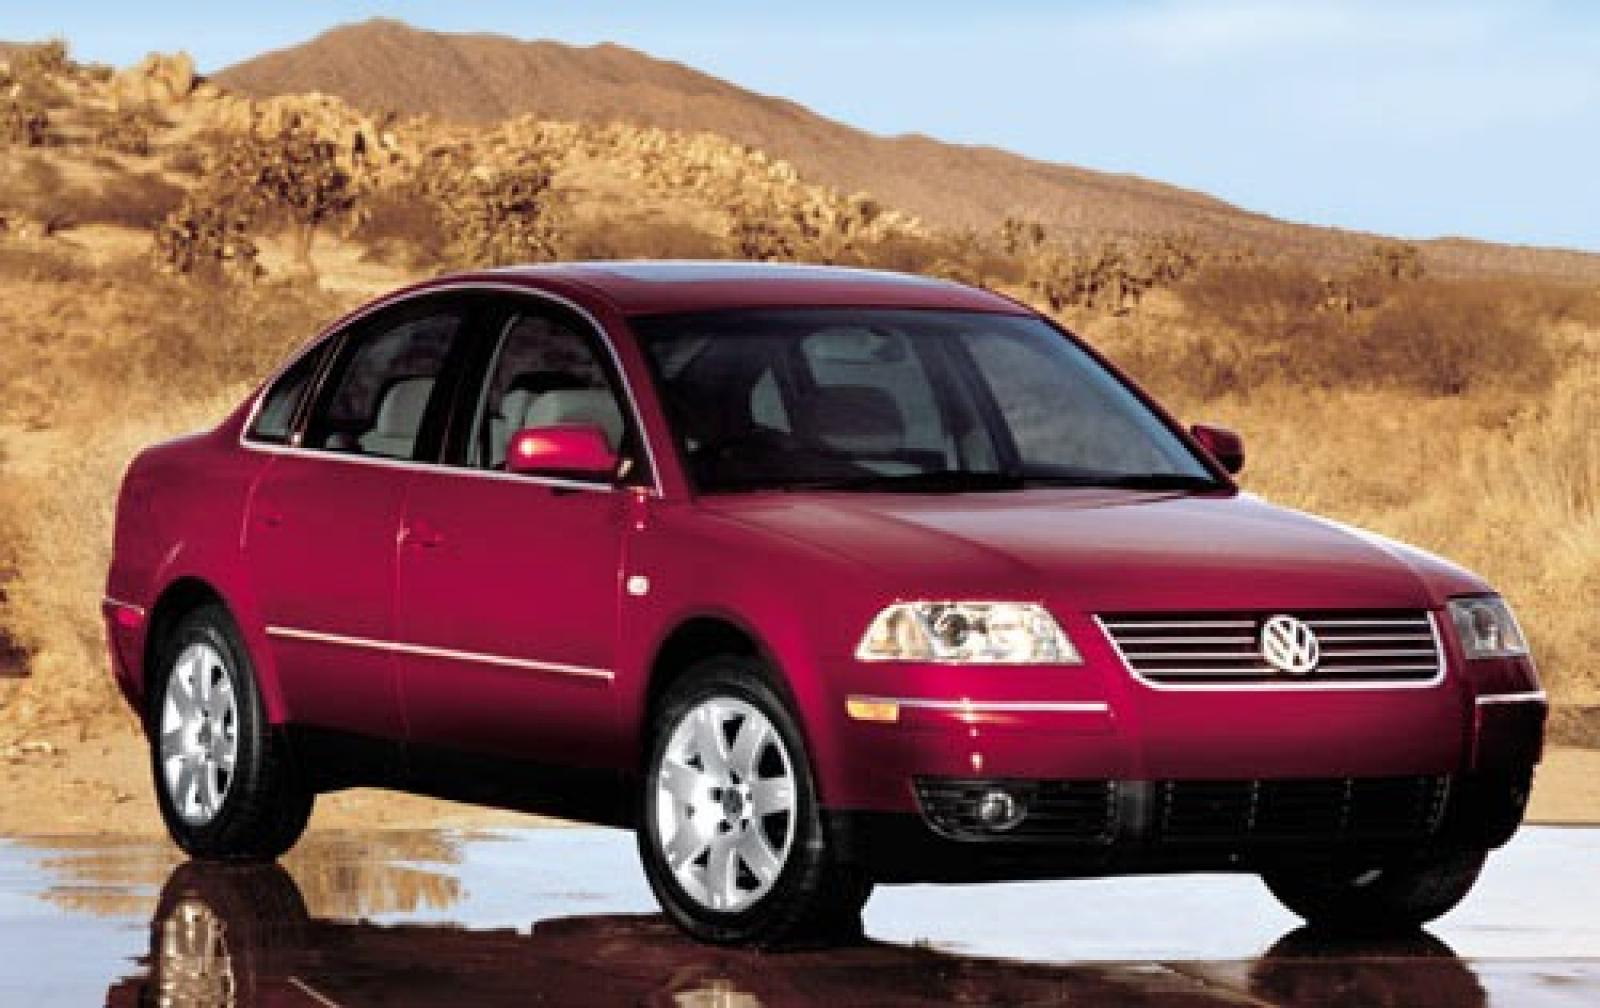 2003 volkswagen passat information and photos zombiedrive. Black Bedroom Furniture Sets. Home Design Ideas